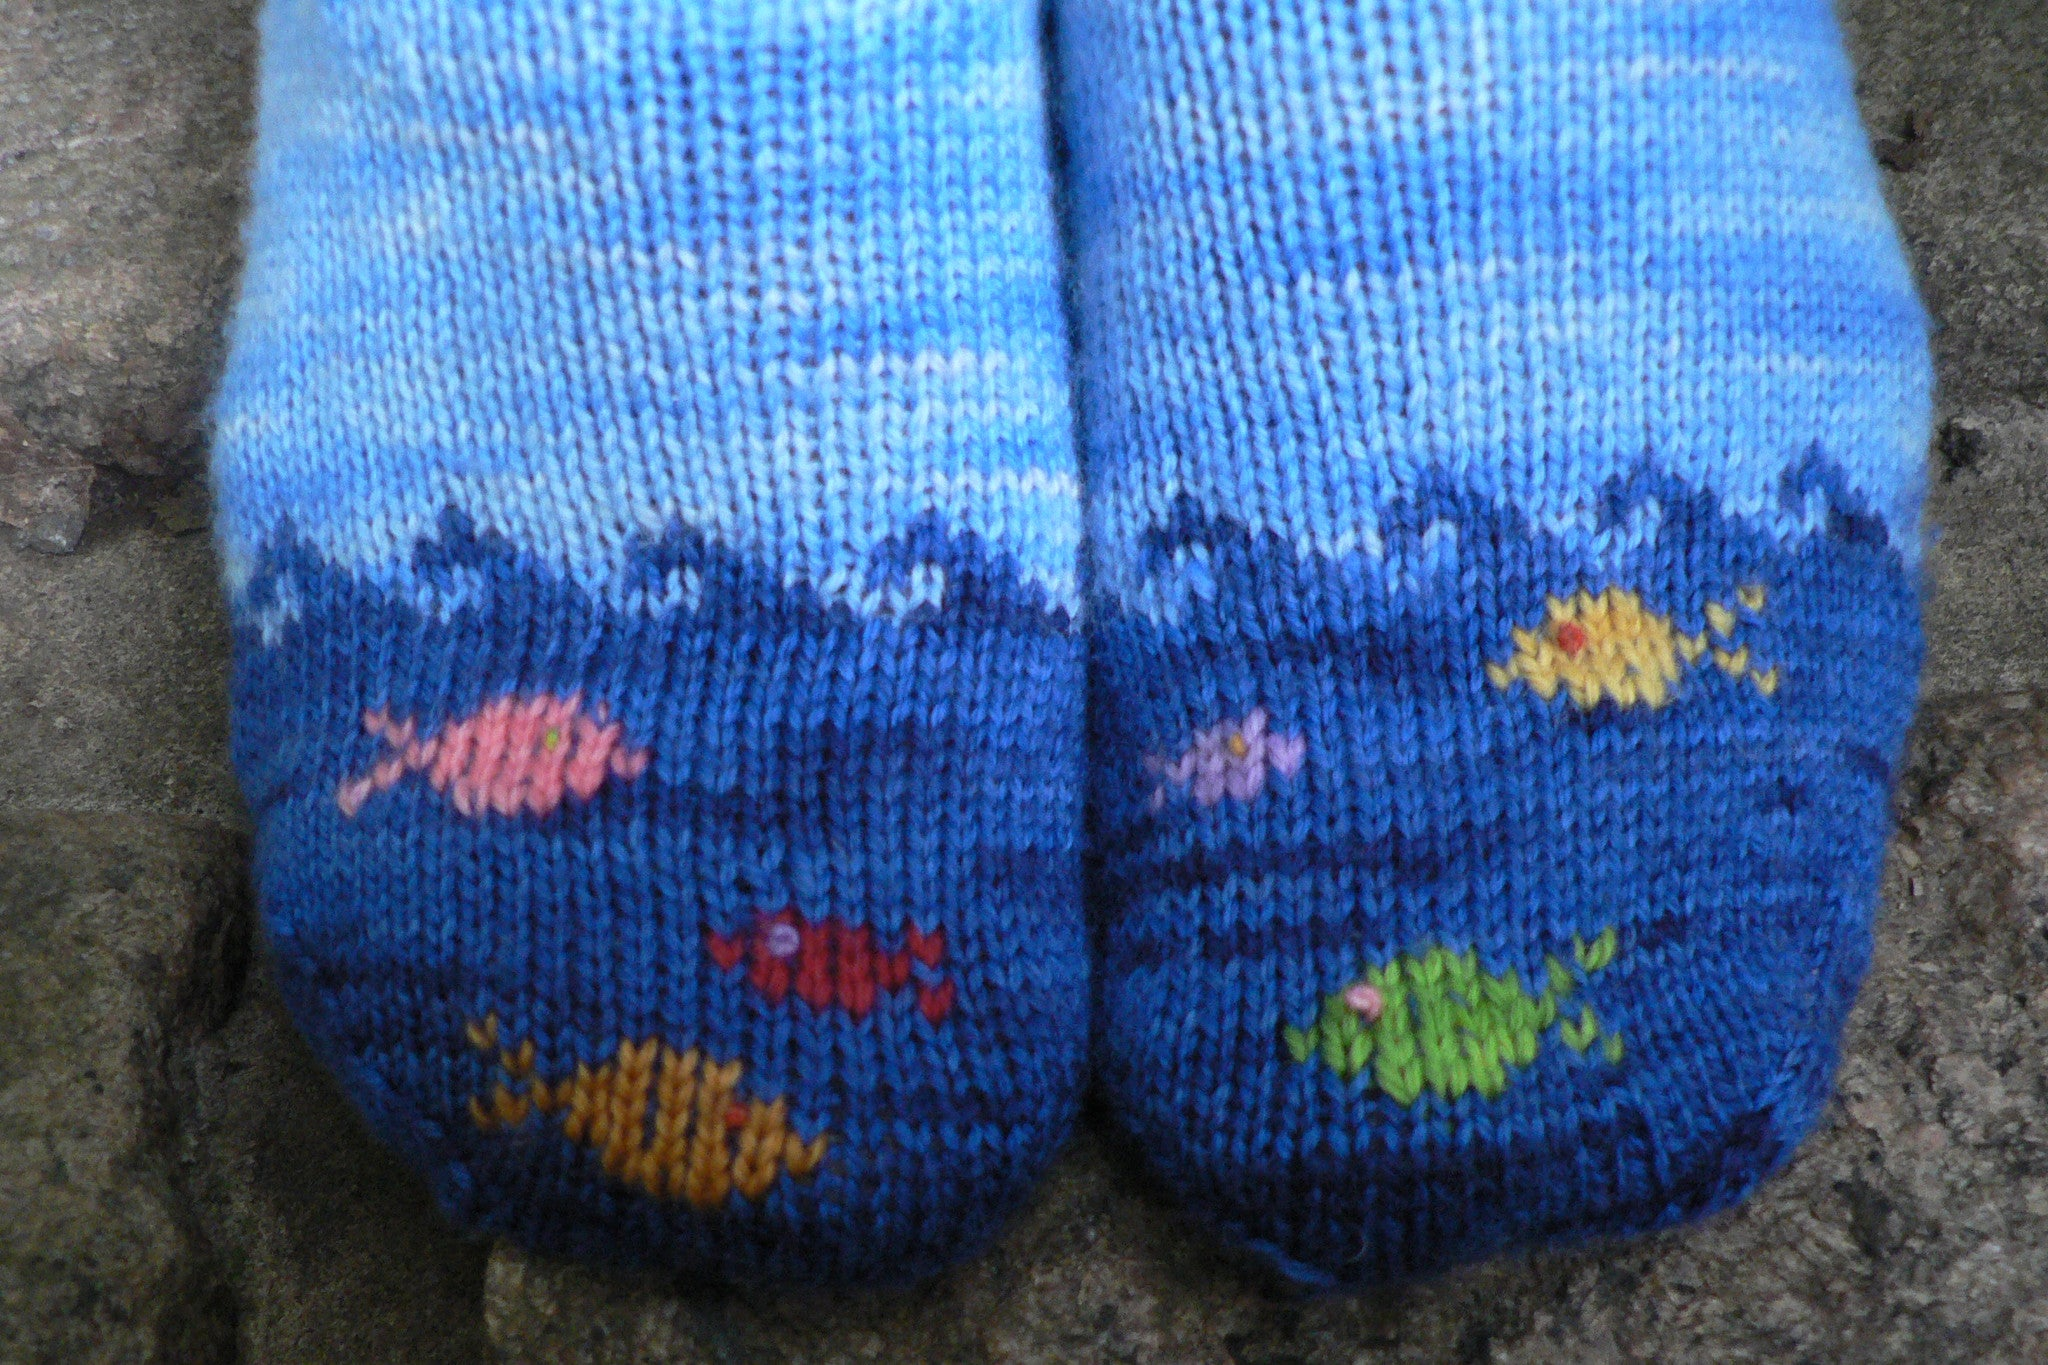 Fish in the Sea sock knitting pattern - Sweet Paprika Designs